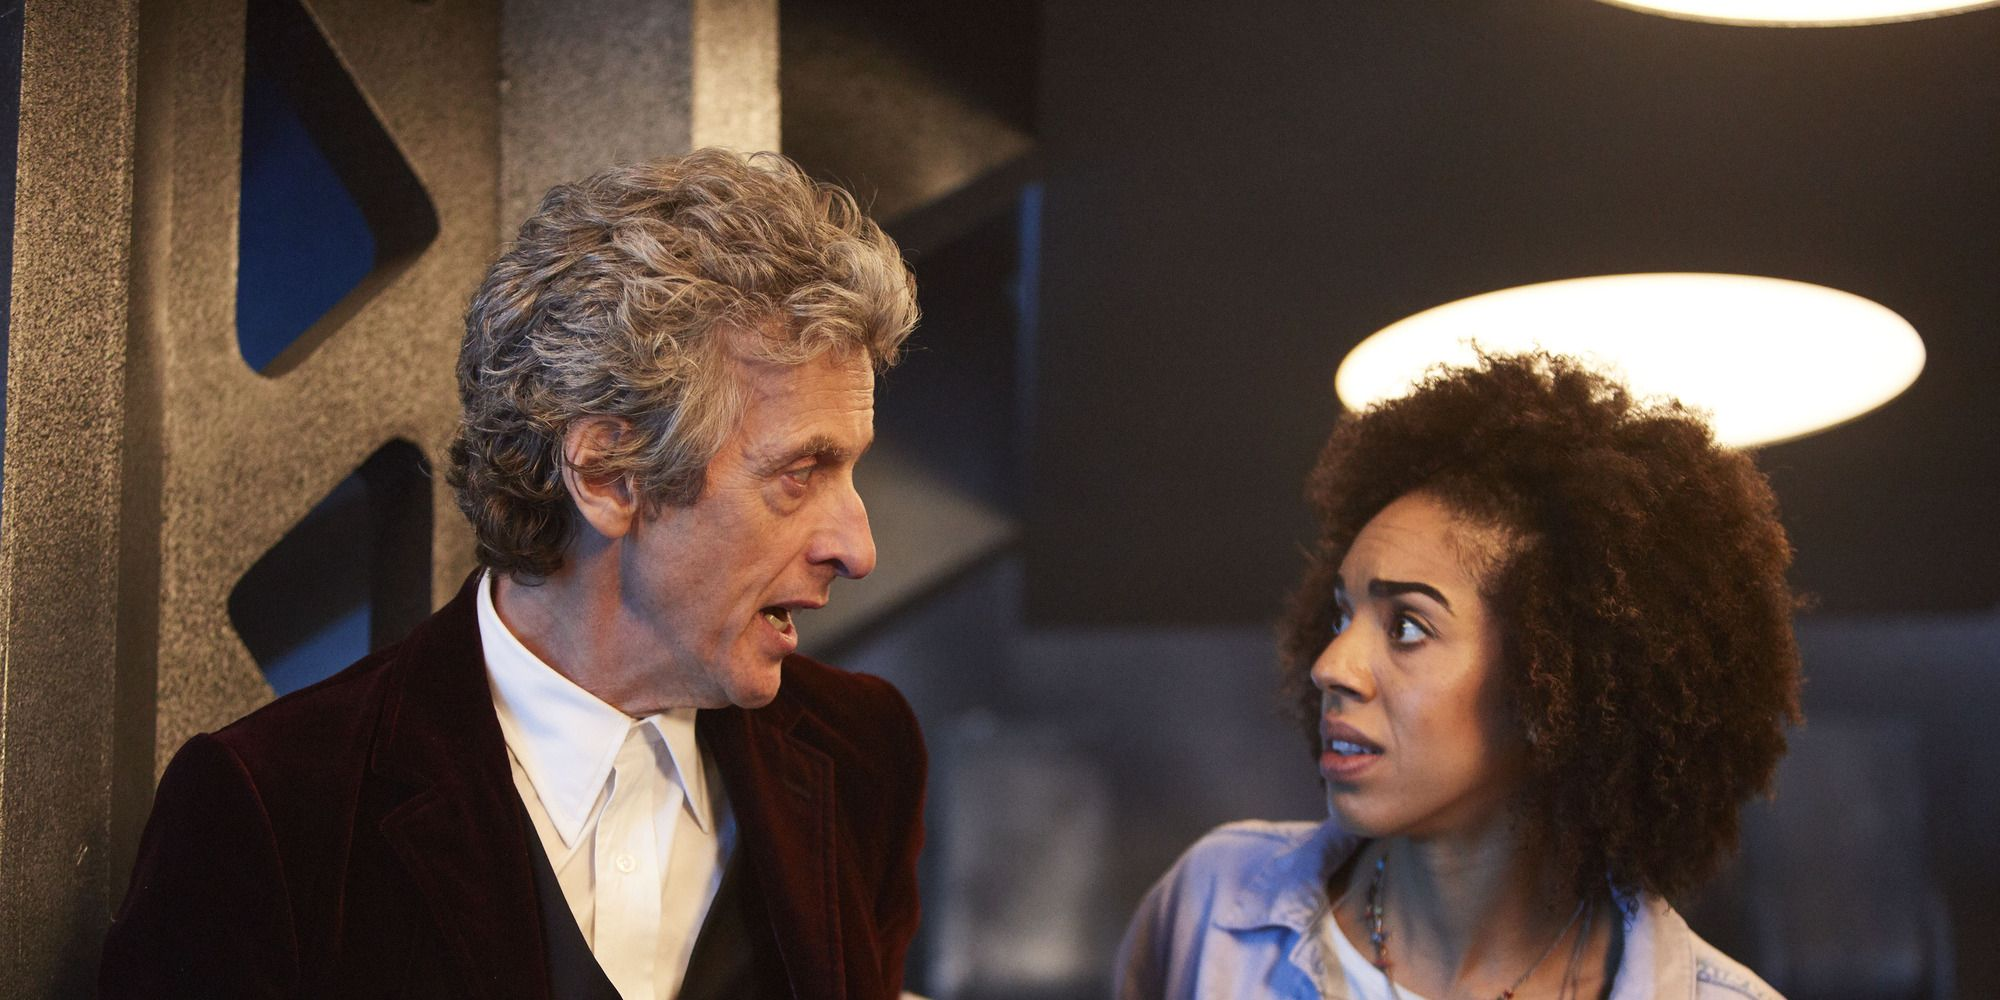 Peter Capaldi and Pearl Mackie in 'Doctor Who' s10e01, 'The Pilot'